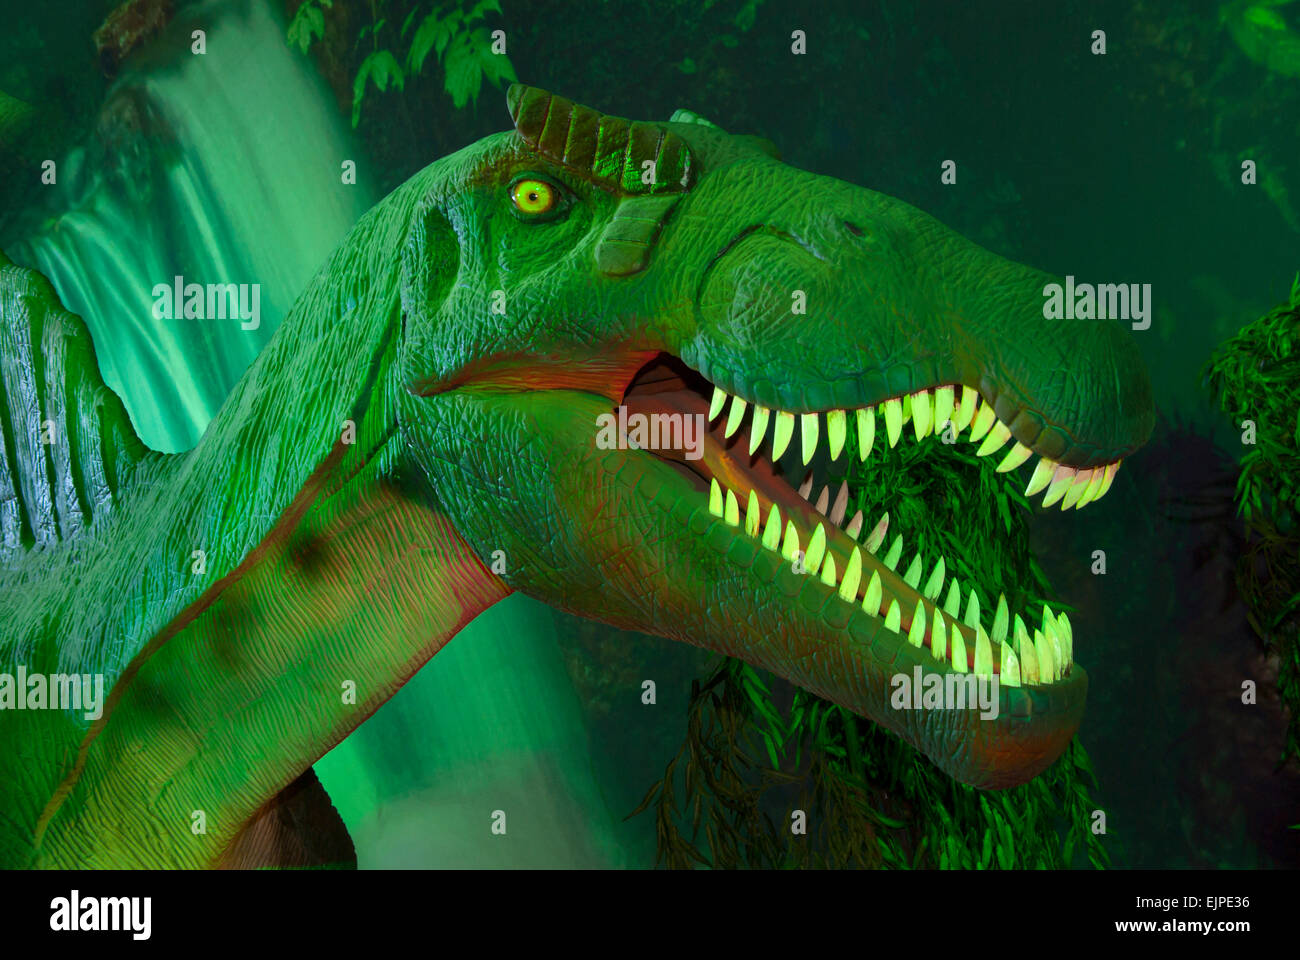 The dinosaur exhibit(Spinosaurus).Europe.Ukraine.Kharkov. - Stock Image